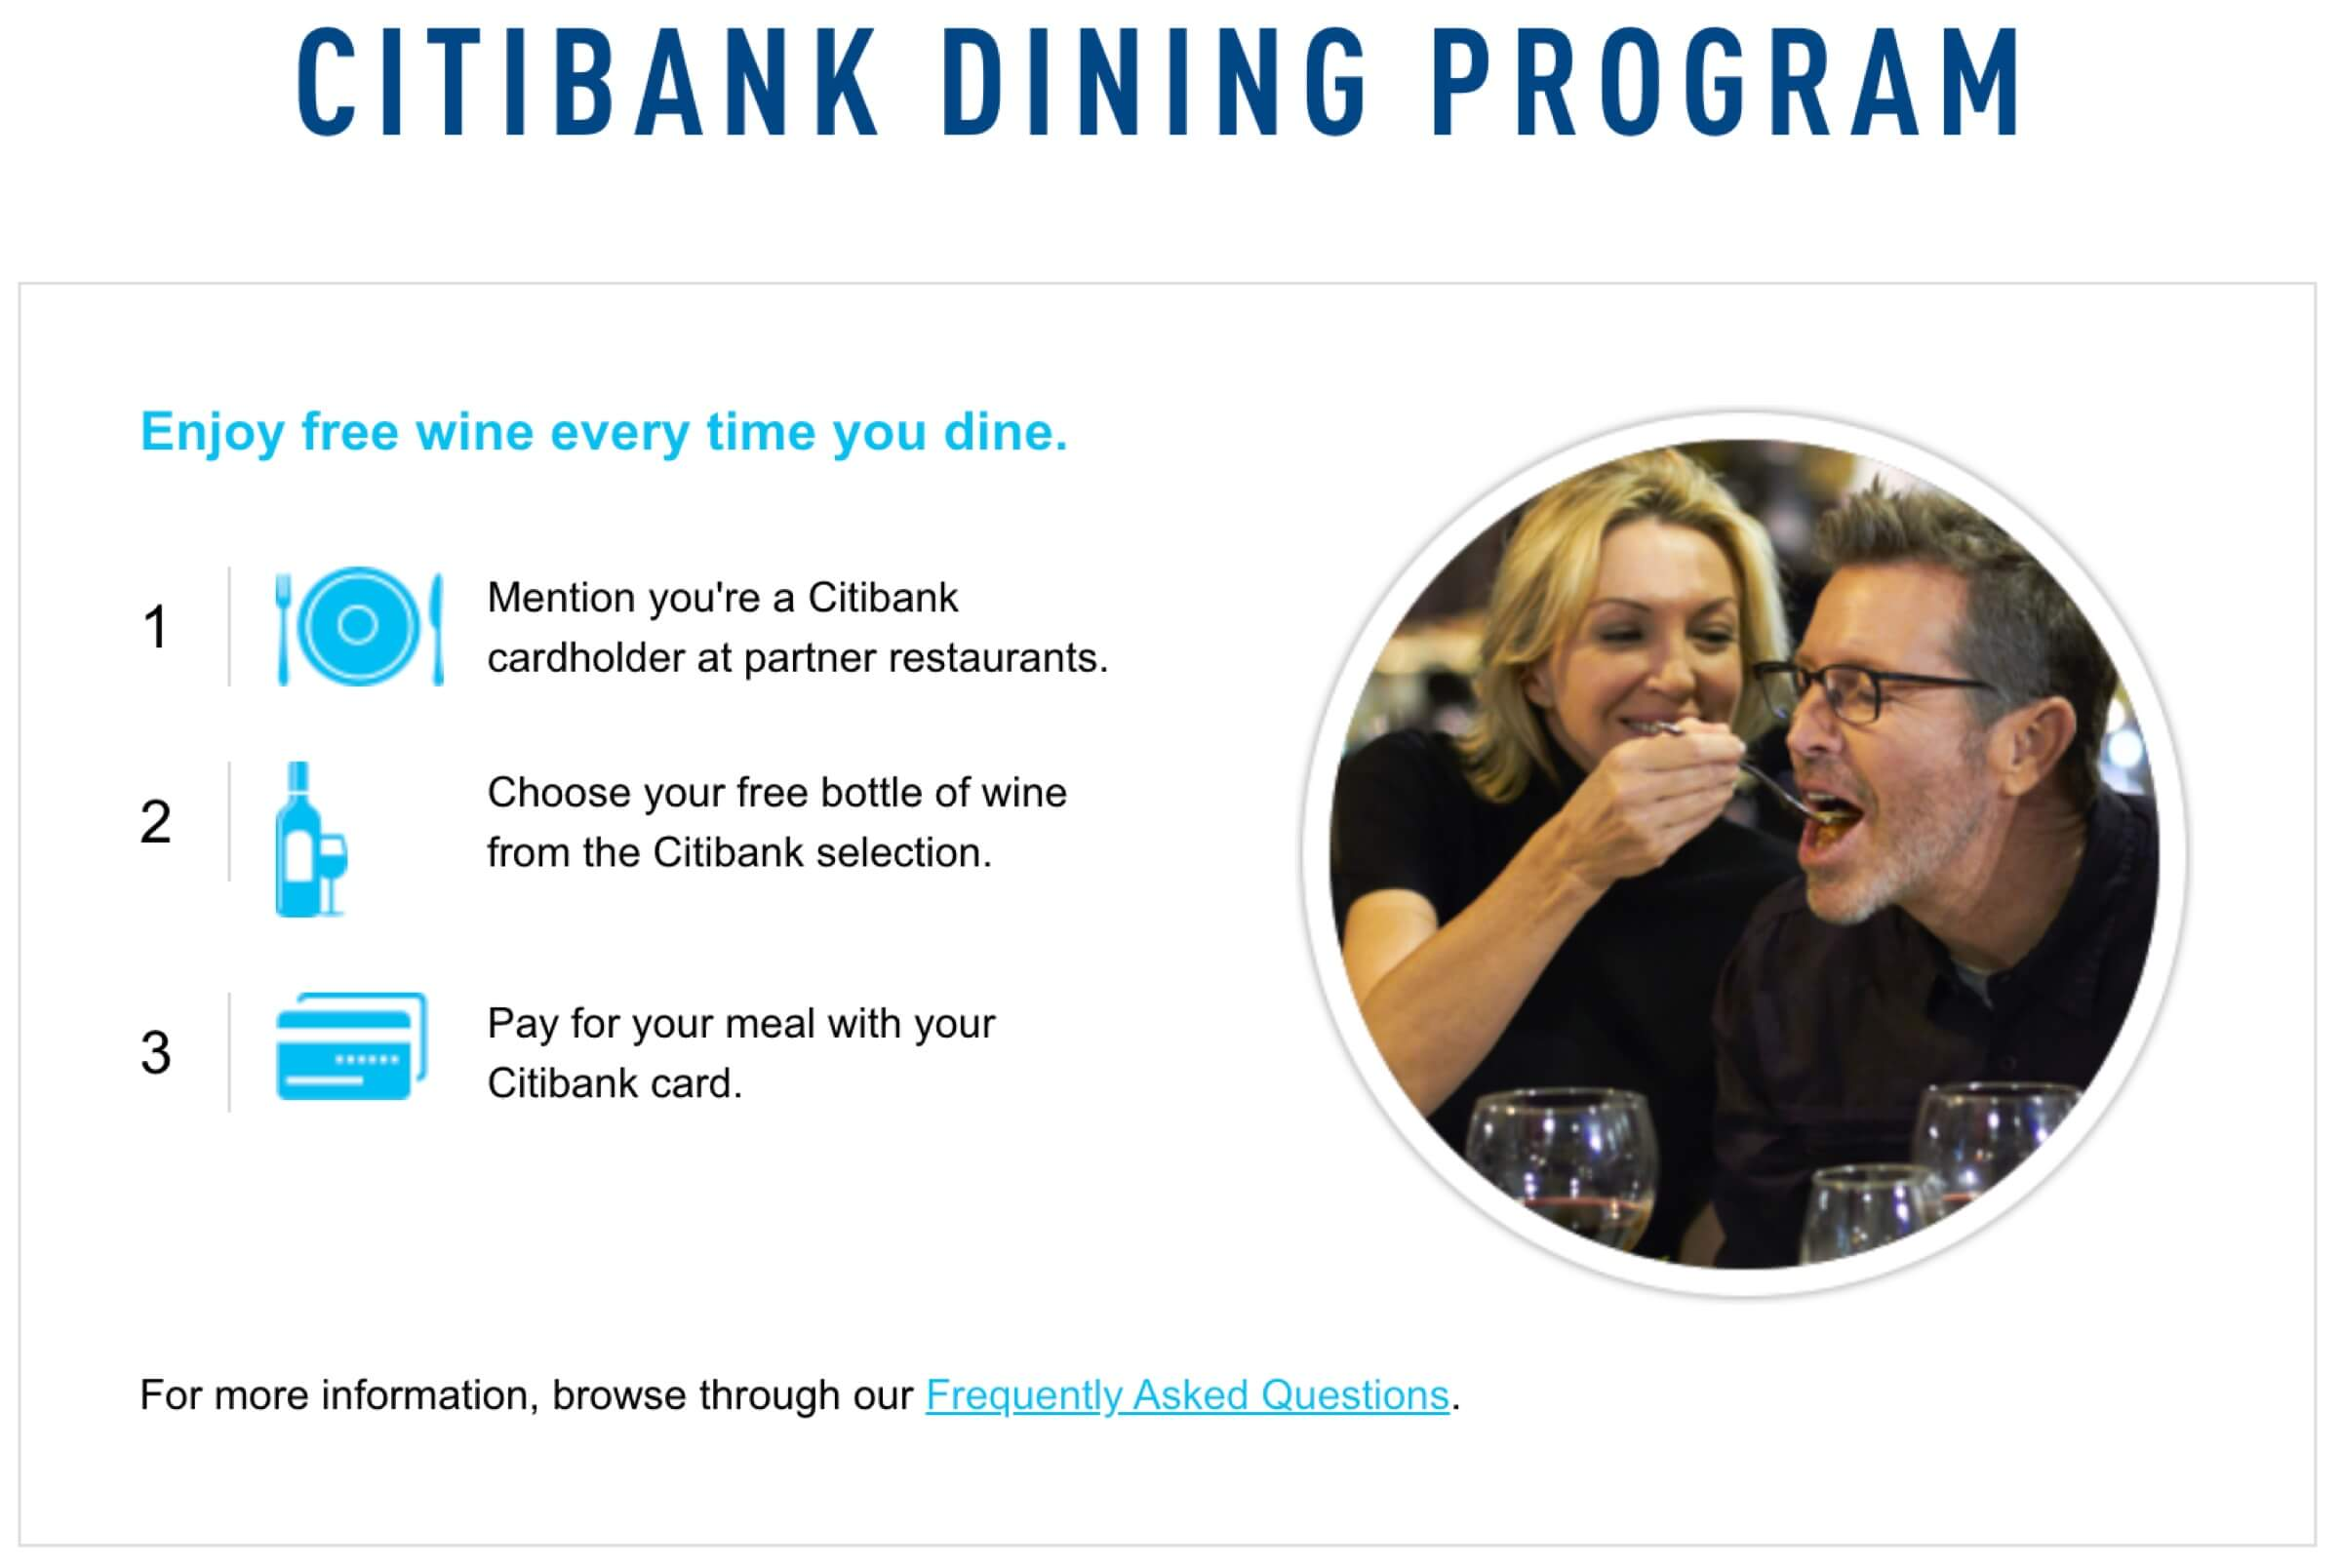 How to use Citibank Dining Program